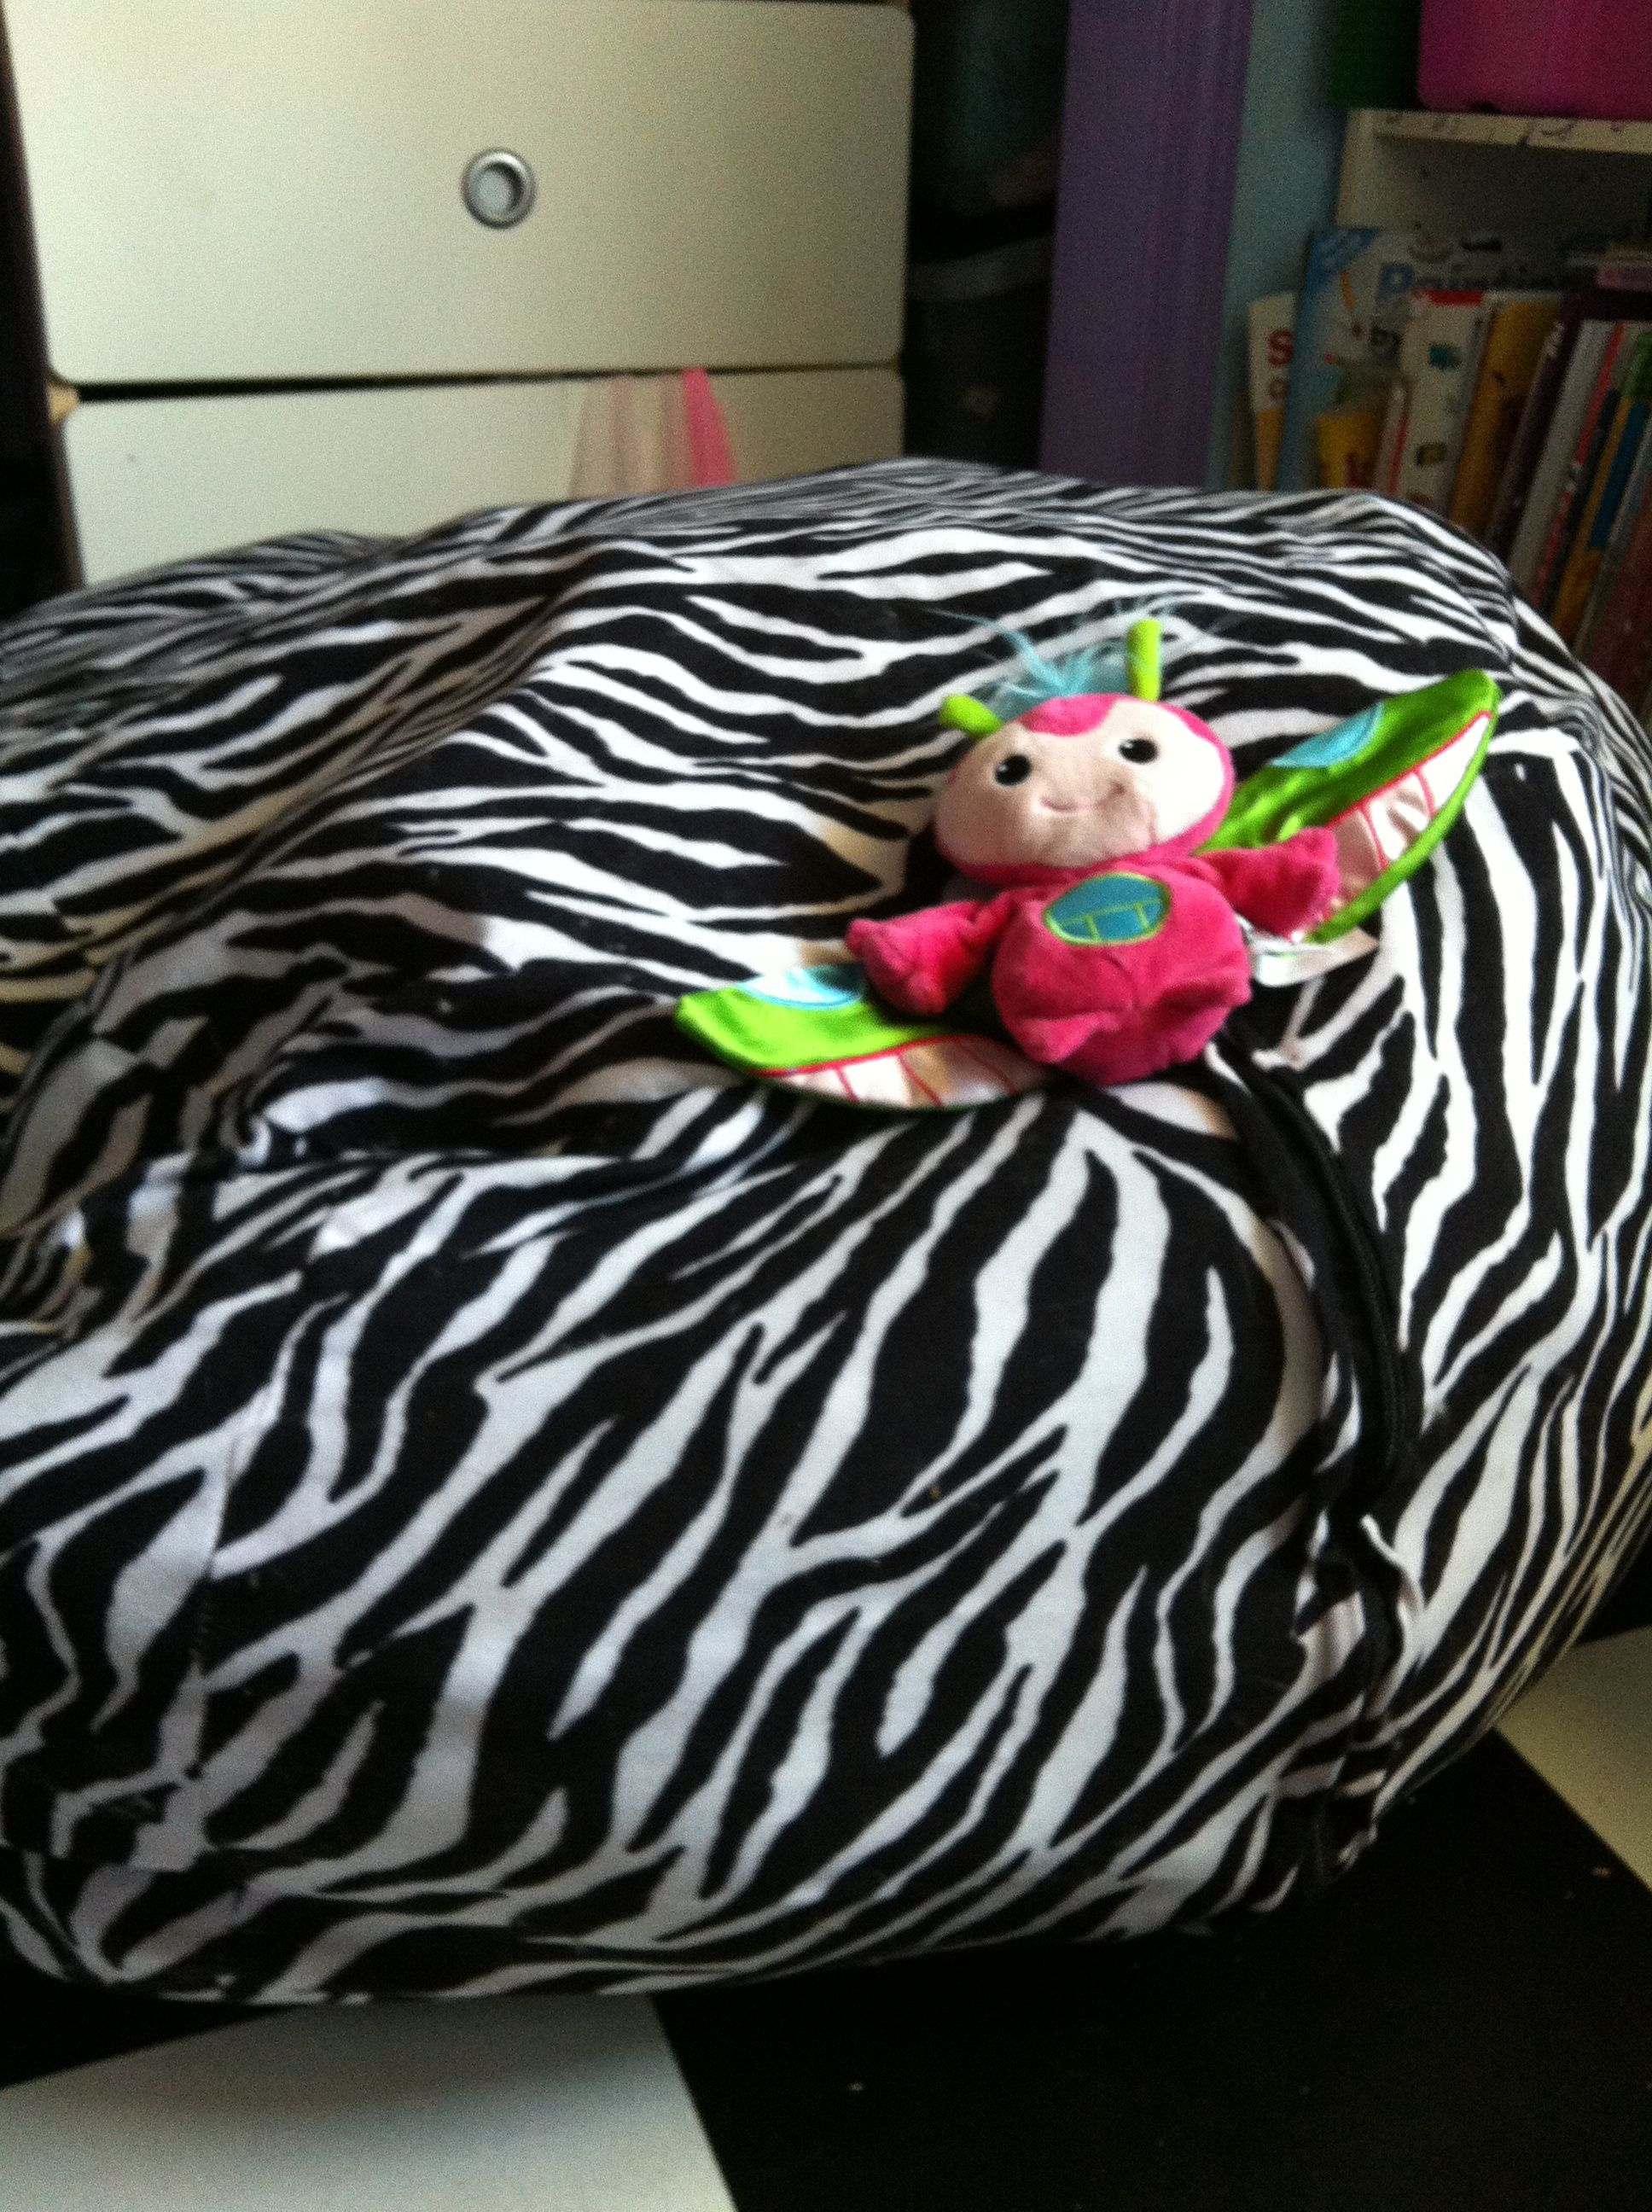 A bean bag makes excellent stuffed animal storage for that